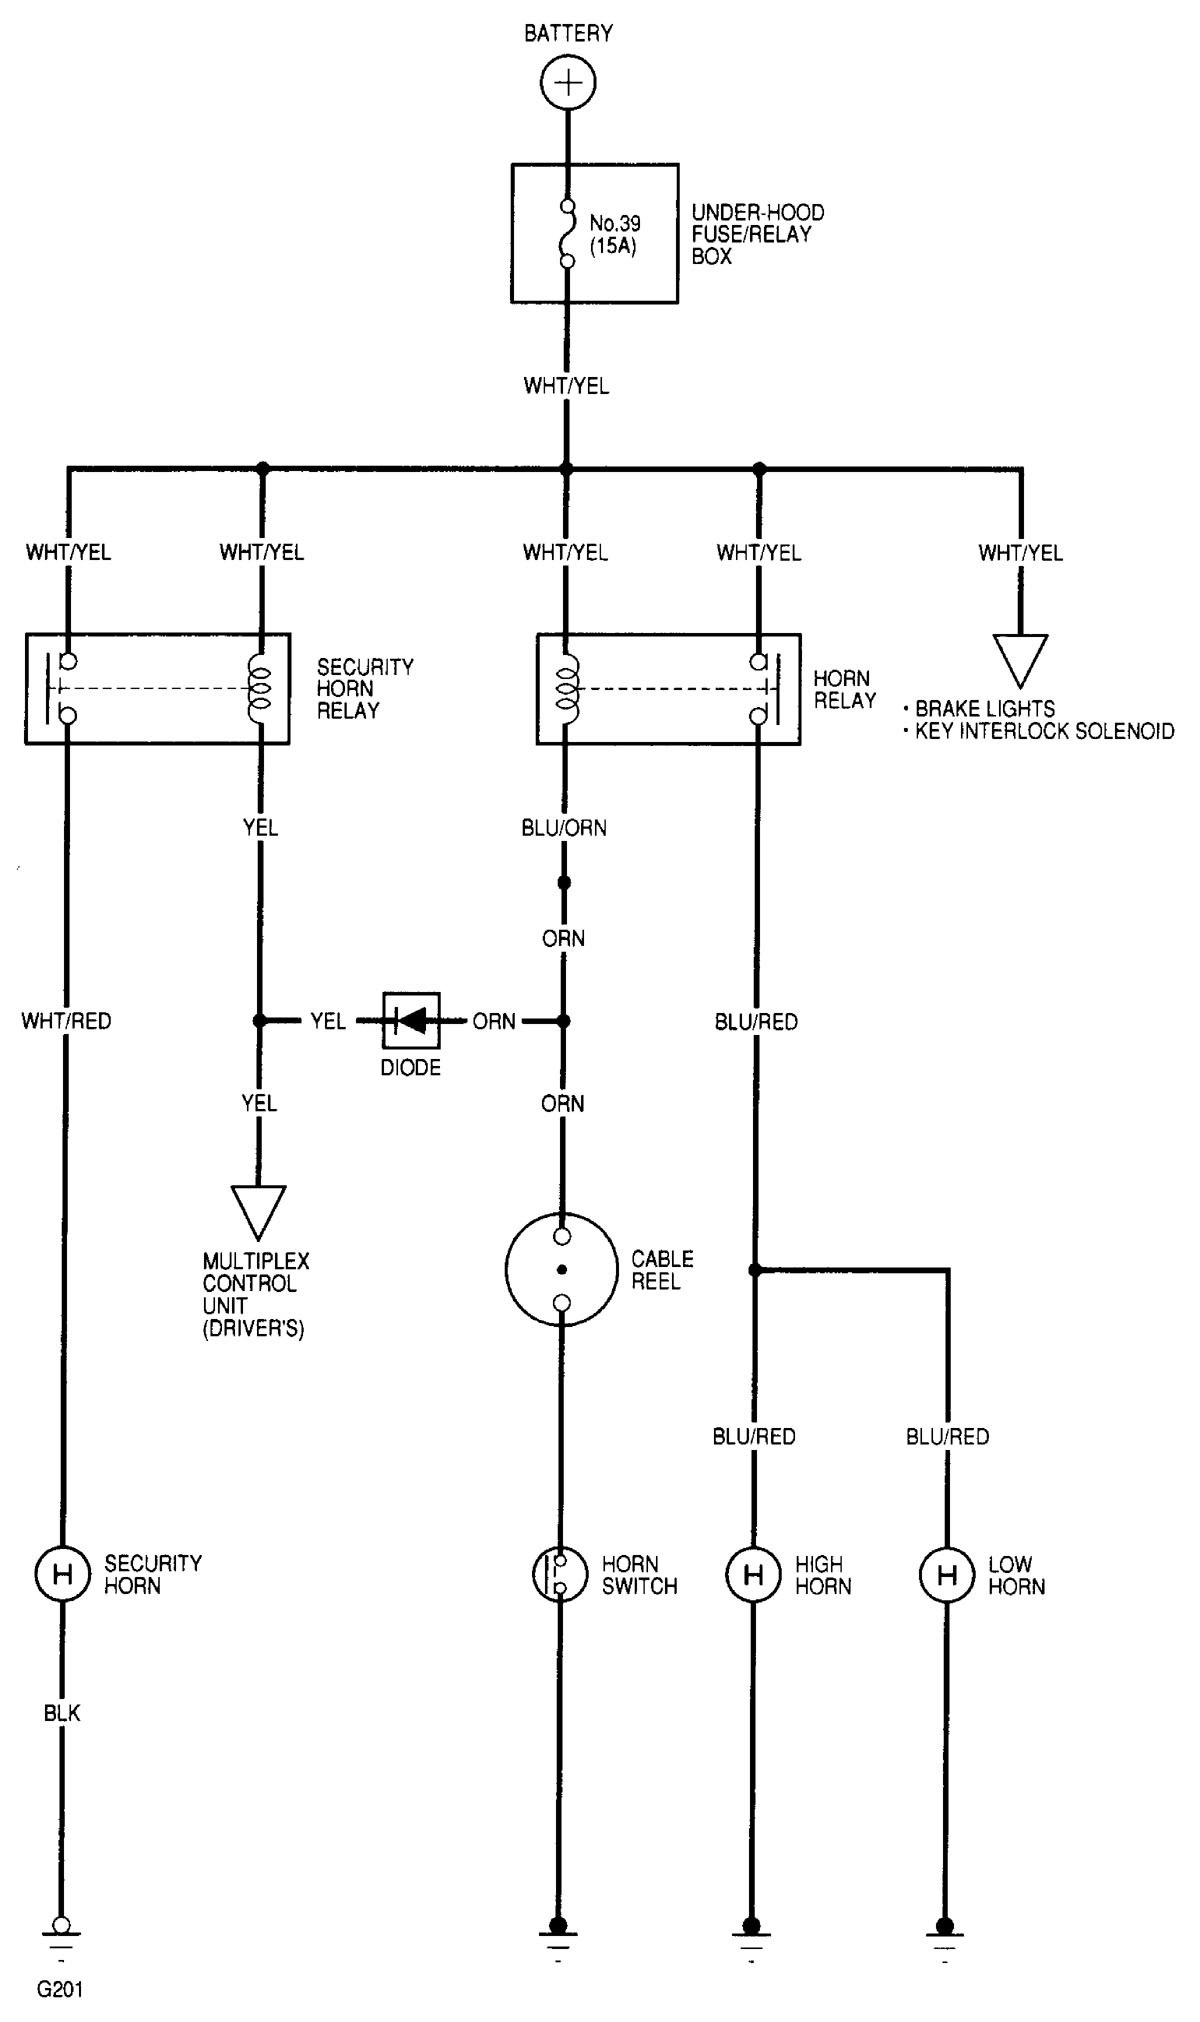 Wiring Diagram For 2002 Acura Rl Detailed Schematics 2000 El Diagrams Horn Carknowledge Exhaust System